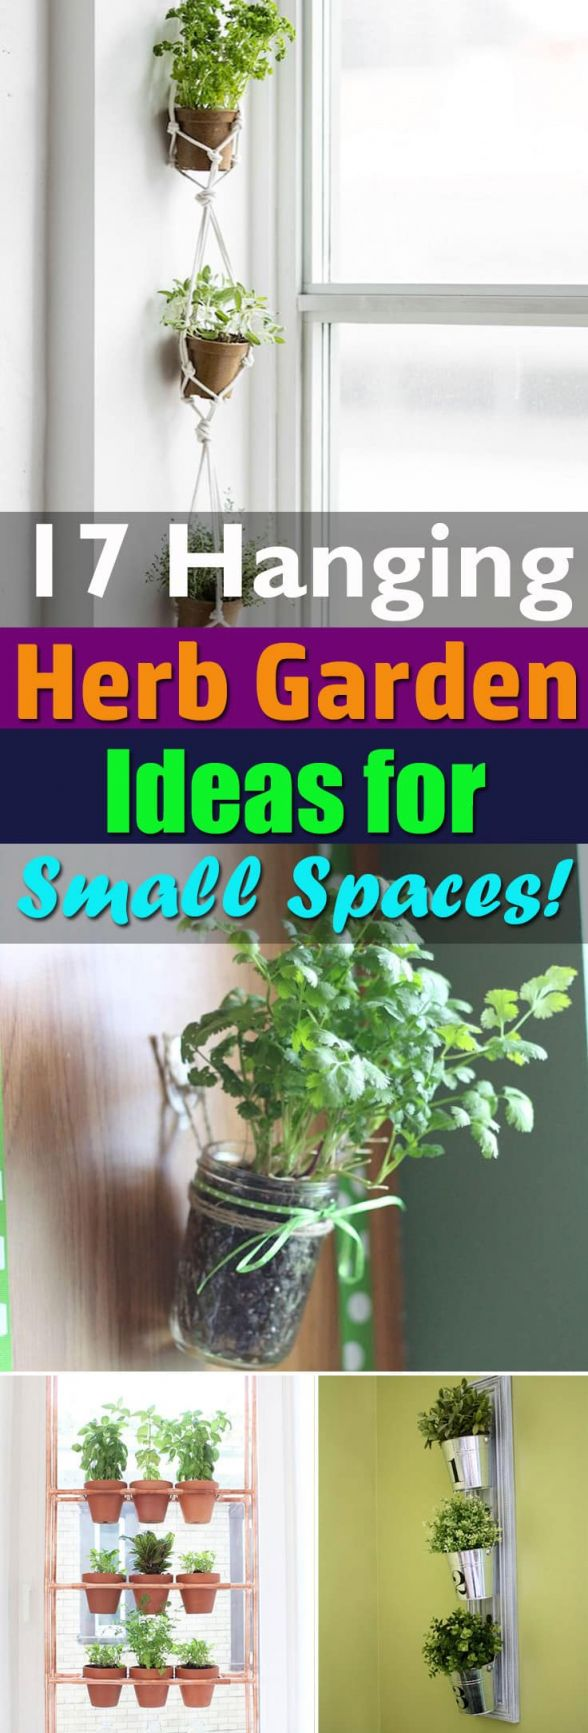 Nice indoor herb garden ideas